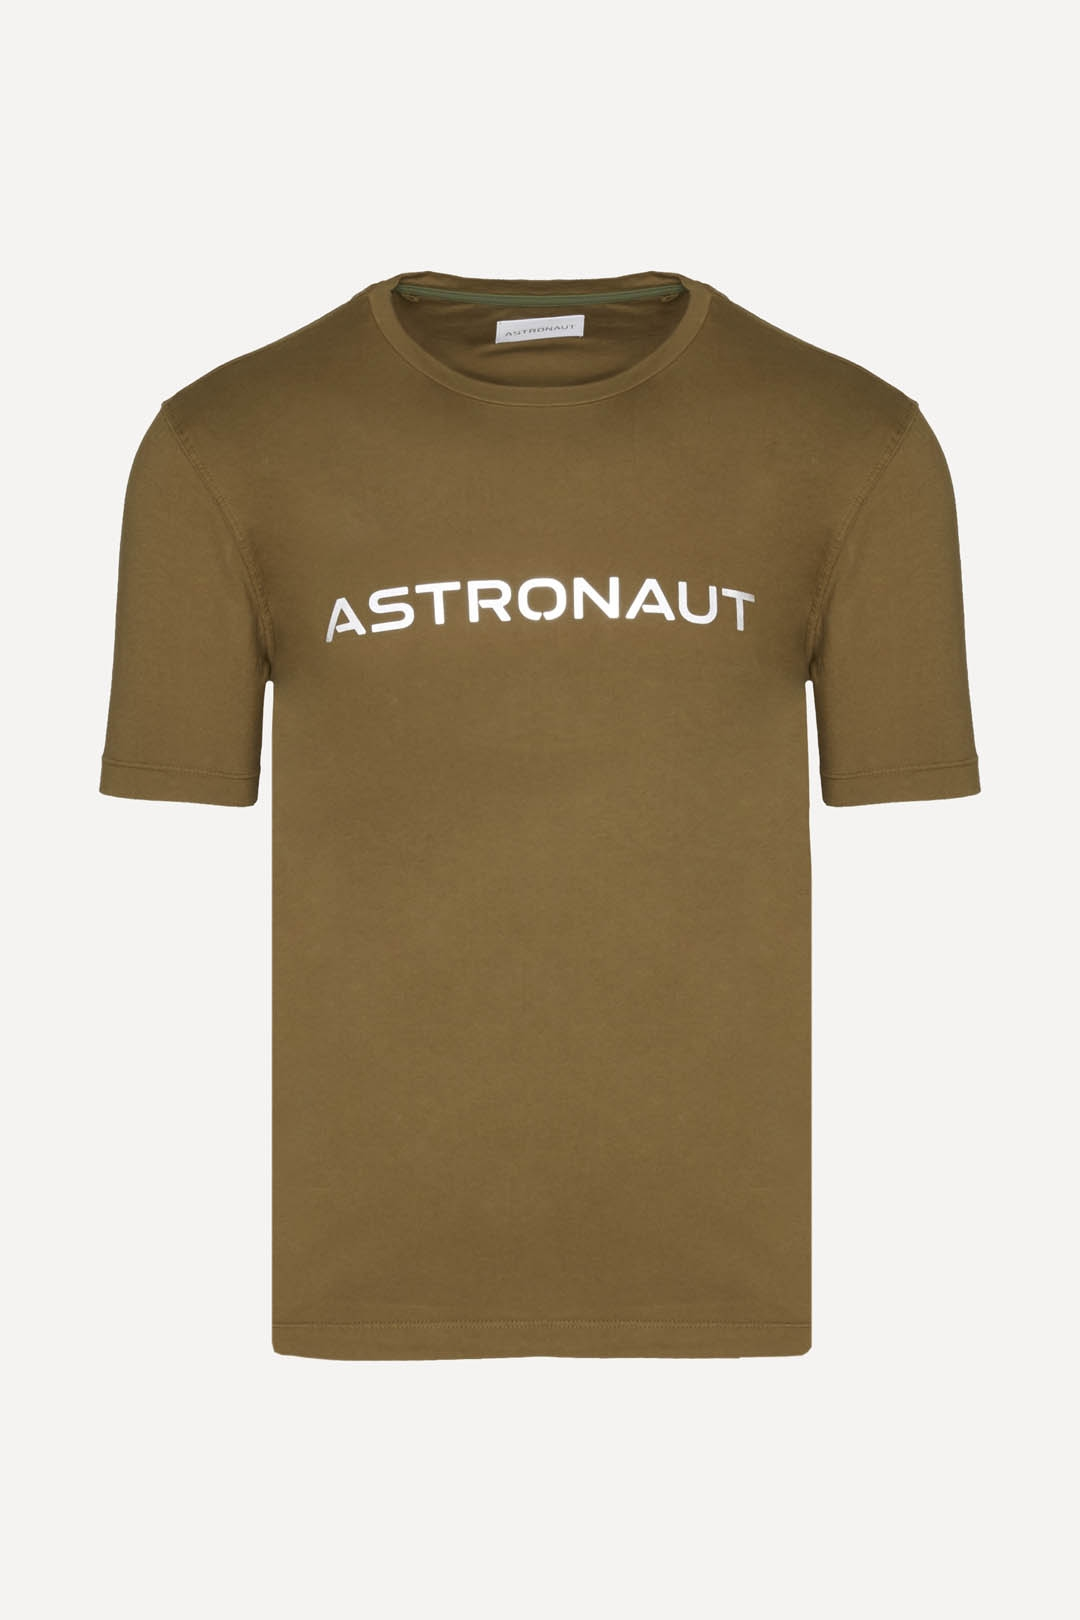 Astronaut T-shirt with reflective print  1